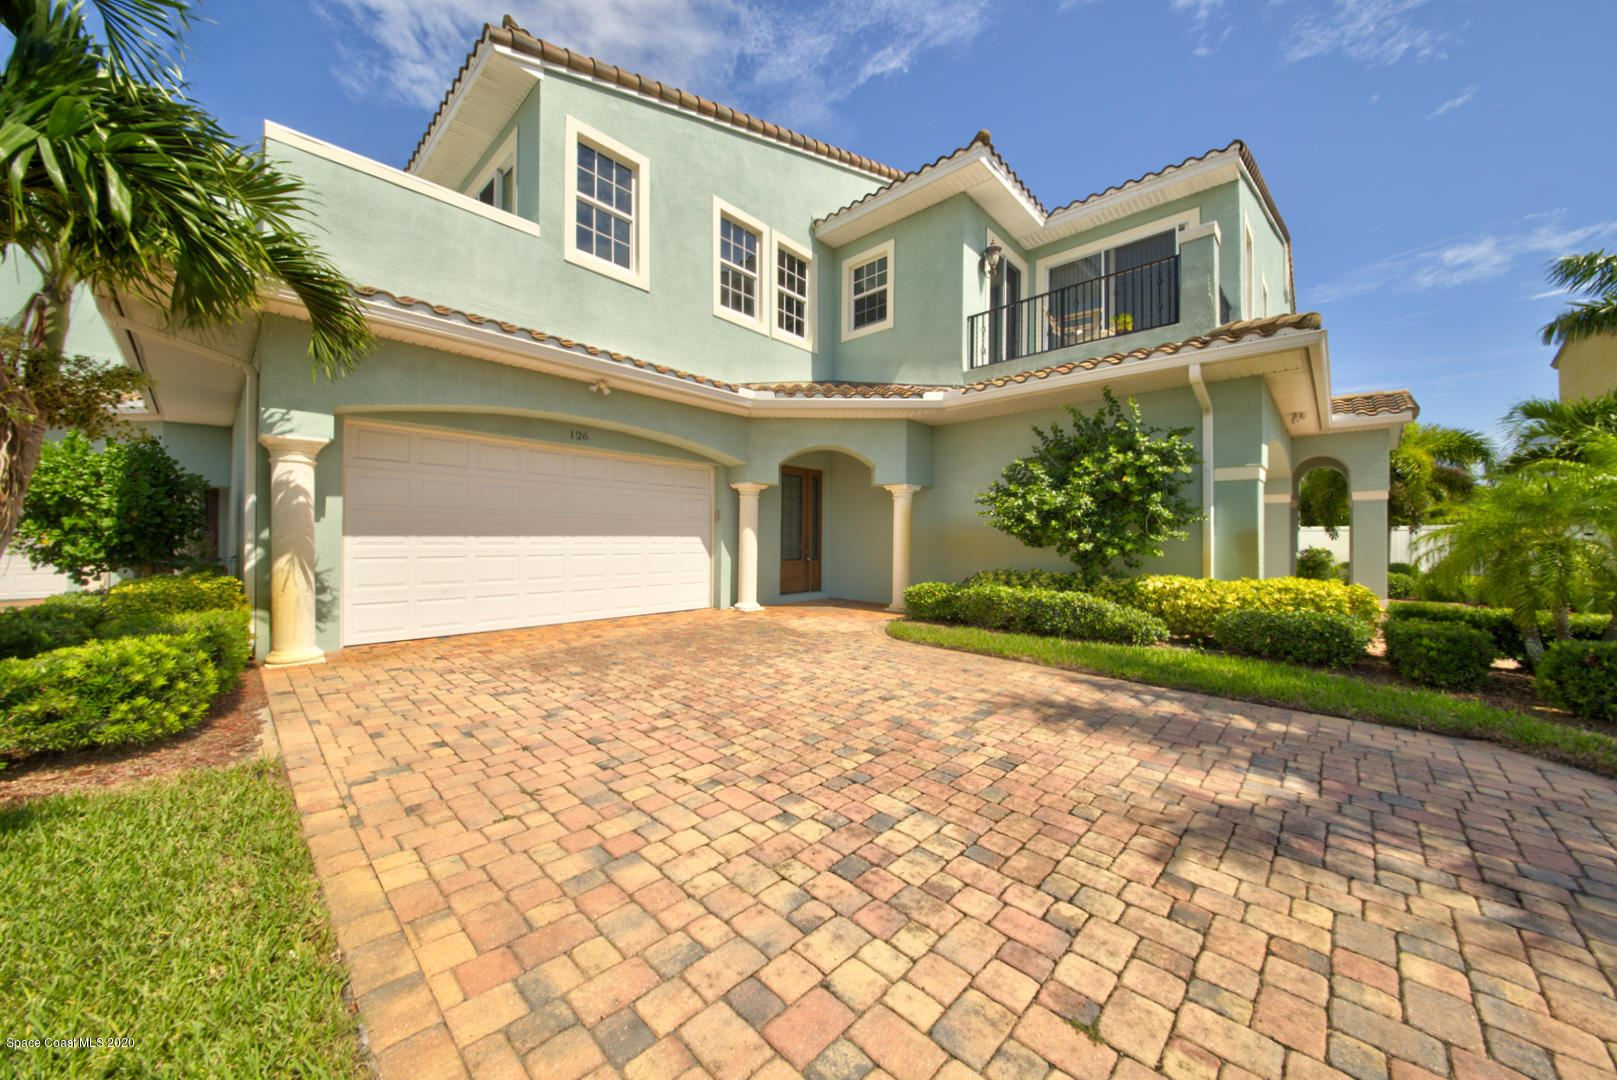 126 Mediterranean Way, Indian Harbour Beach, FL 32937 - #: 886230